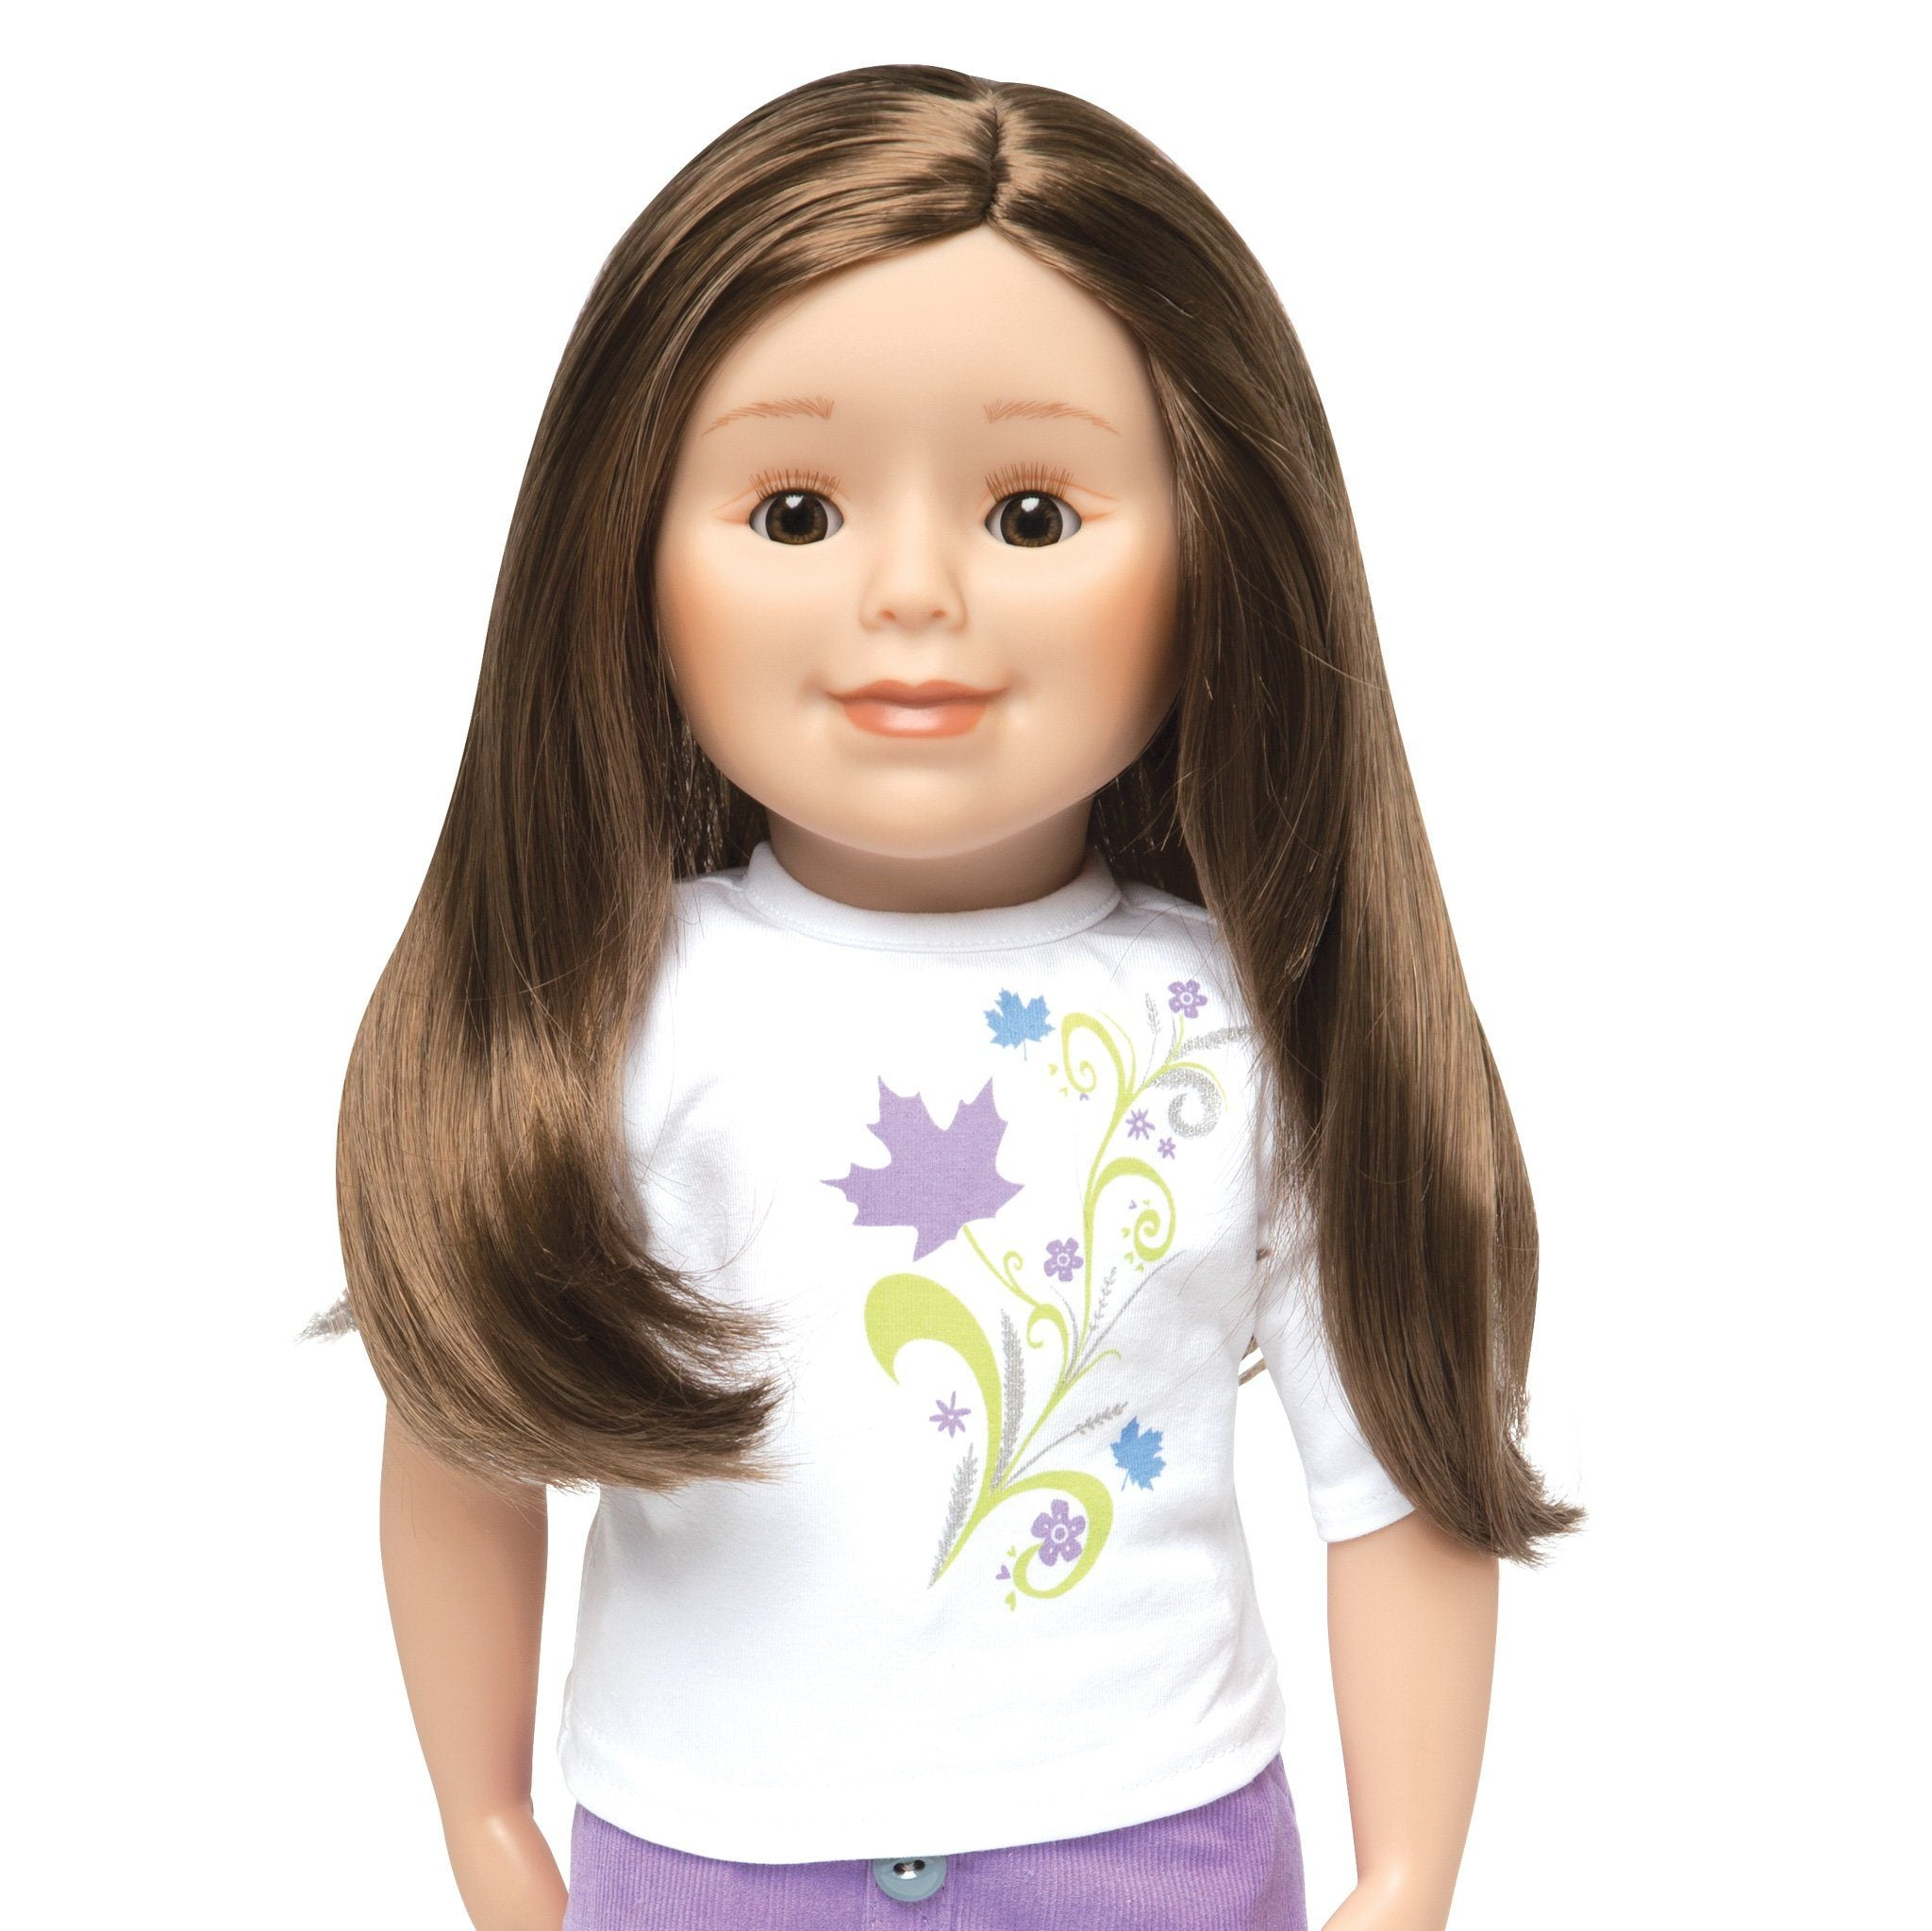 KMF18 Maplelea Friend 18 inch doll with long brown hair, light skin, brown eyes